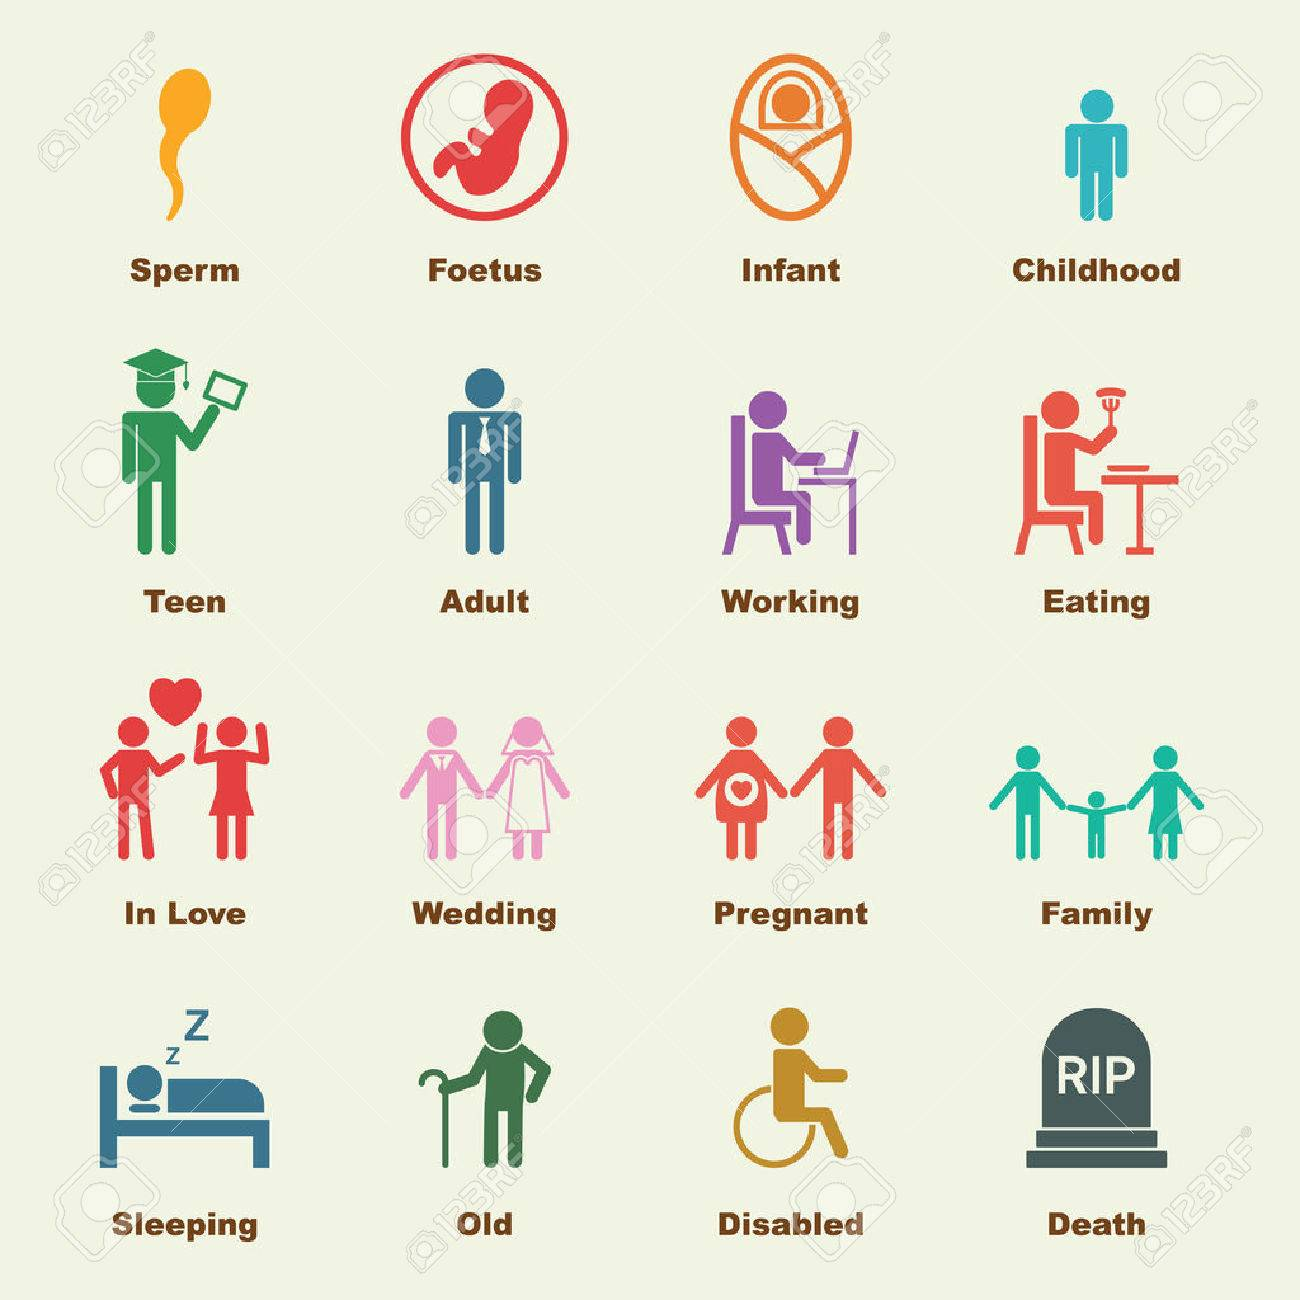 human life cycle stock photos images     royalty free human    human life cycle  human life elements  vector infographic icons